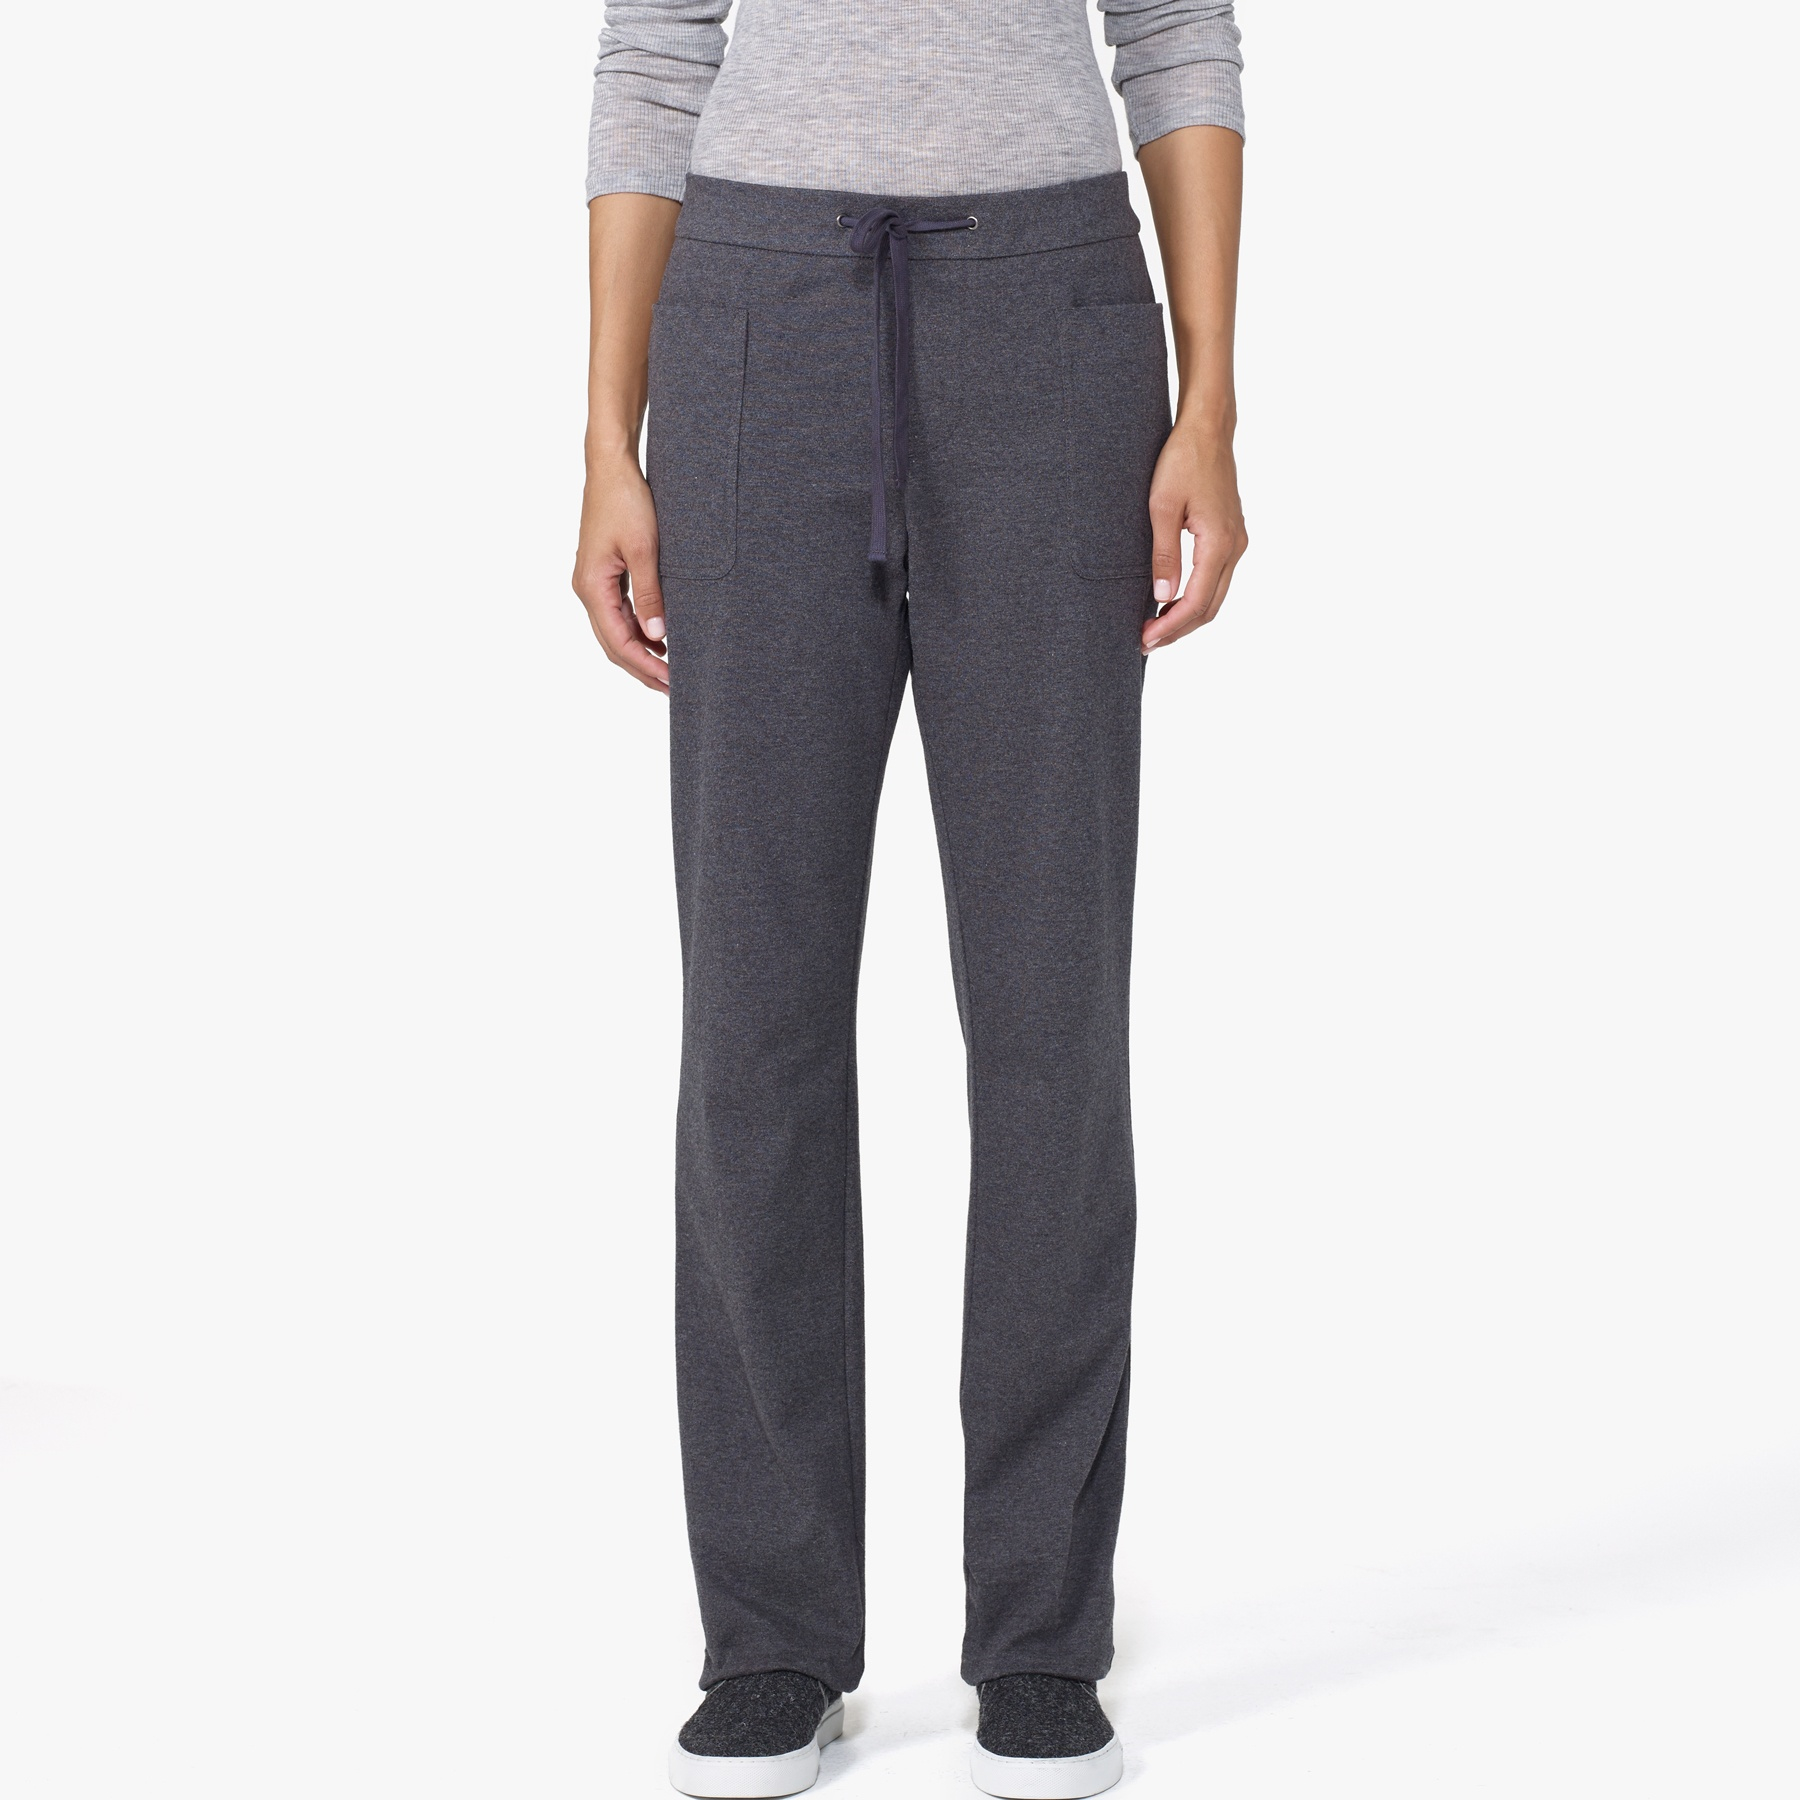 James Perse Knit Straight Leg Pant In Gray Heather